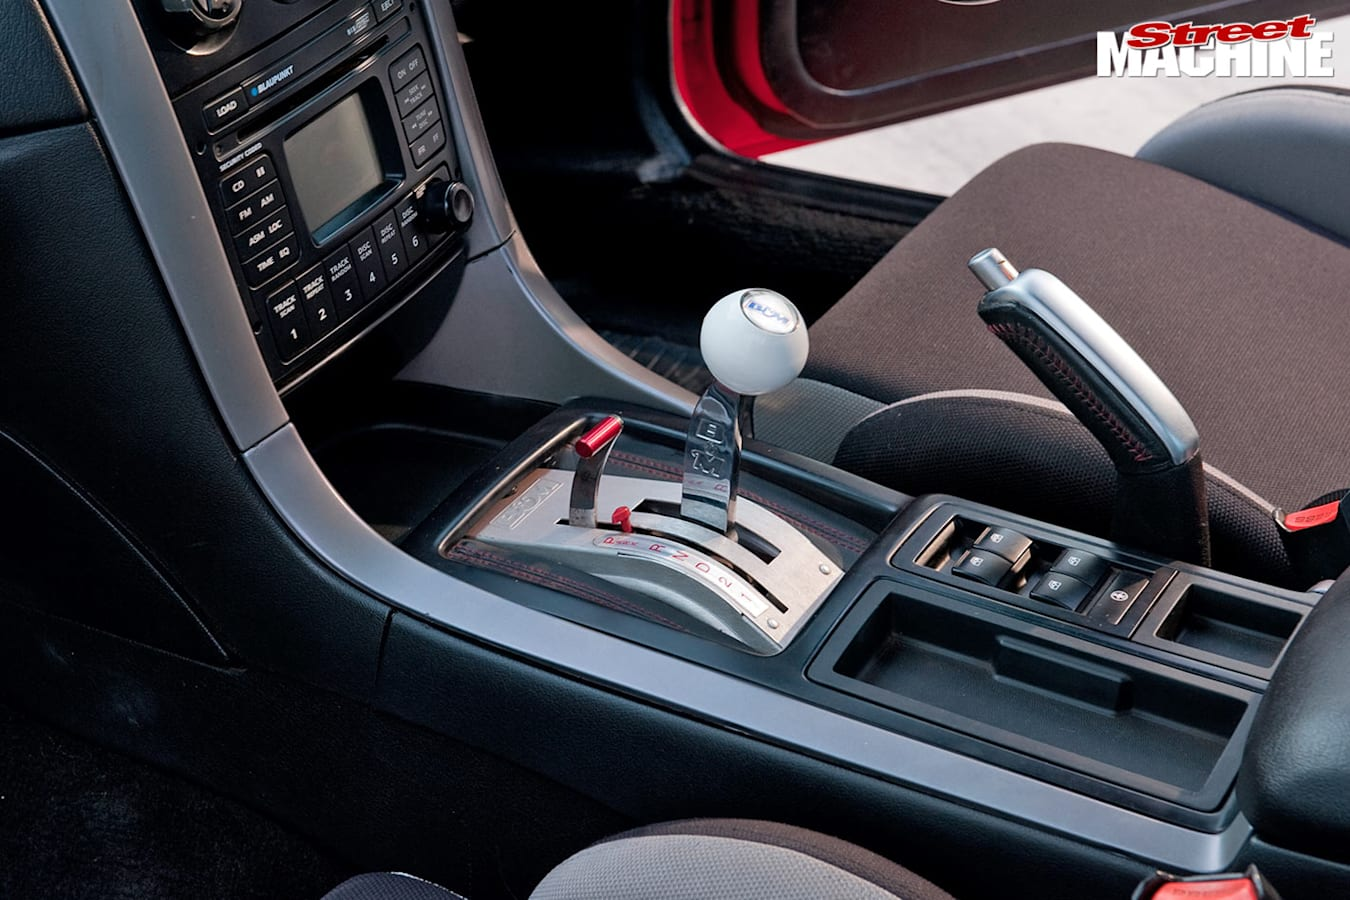 Holden VK Commodore shifter